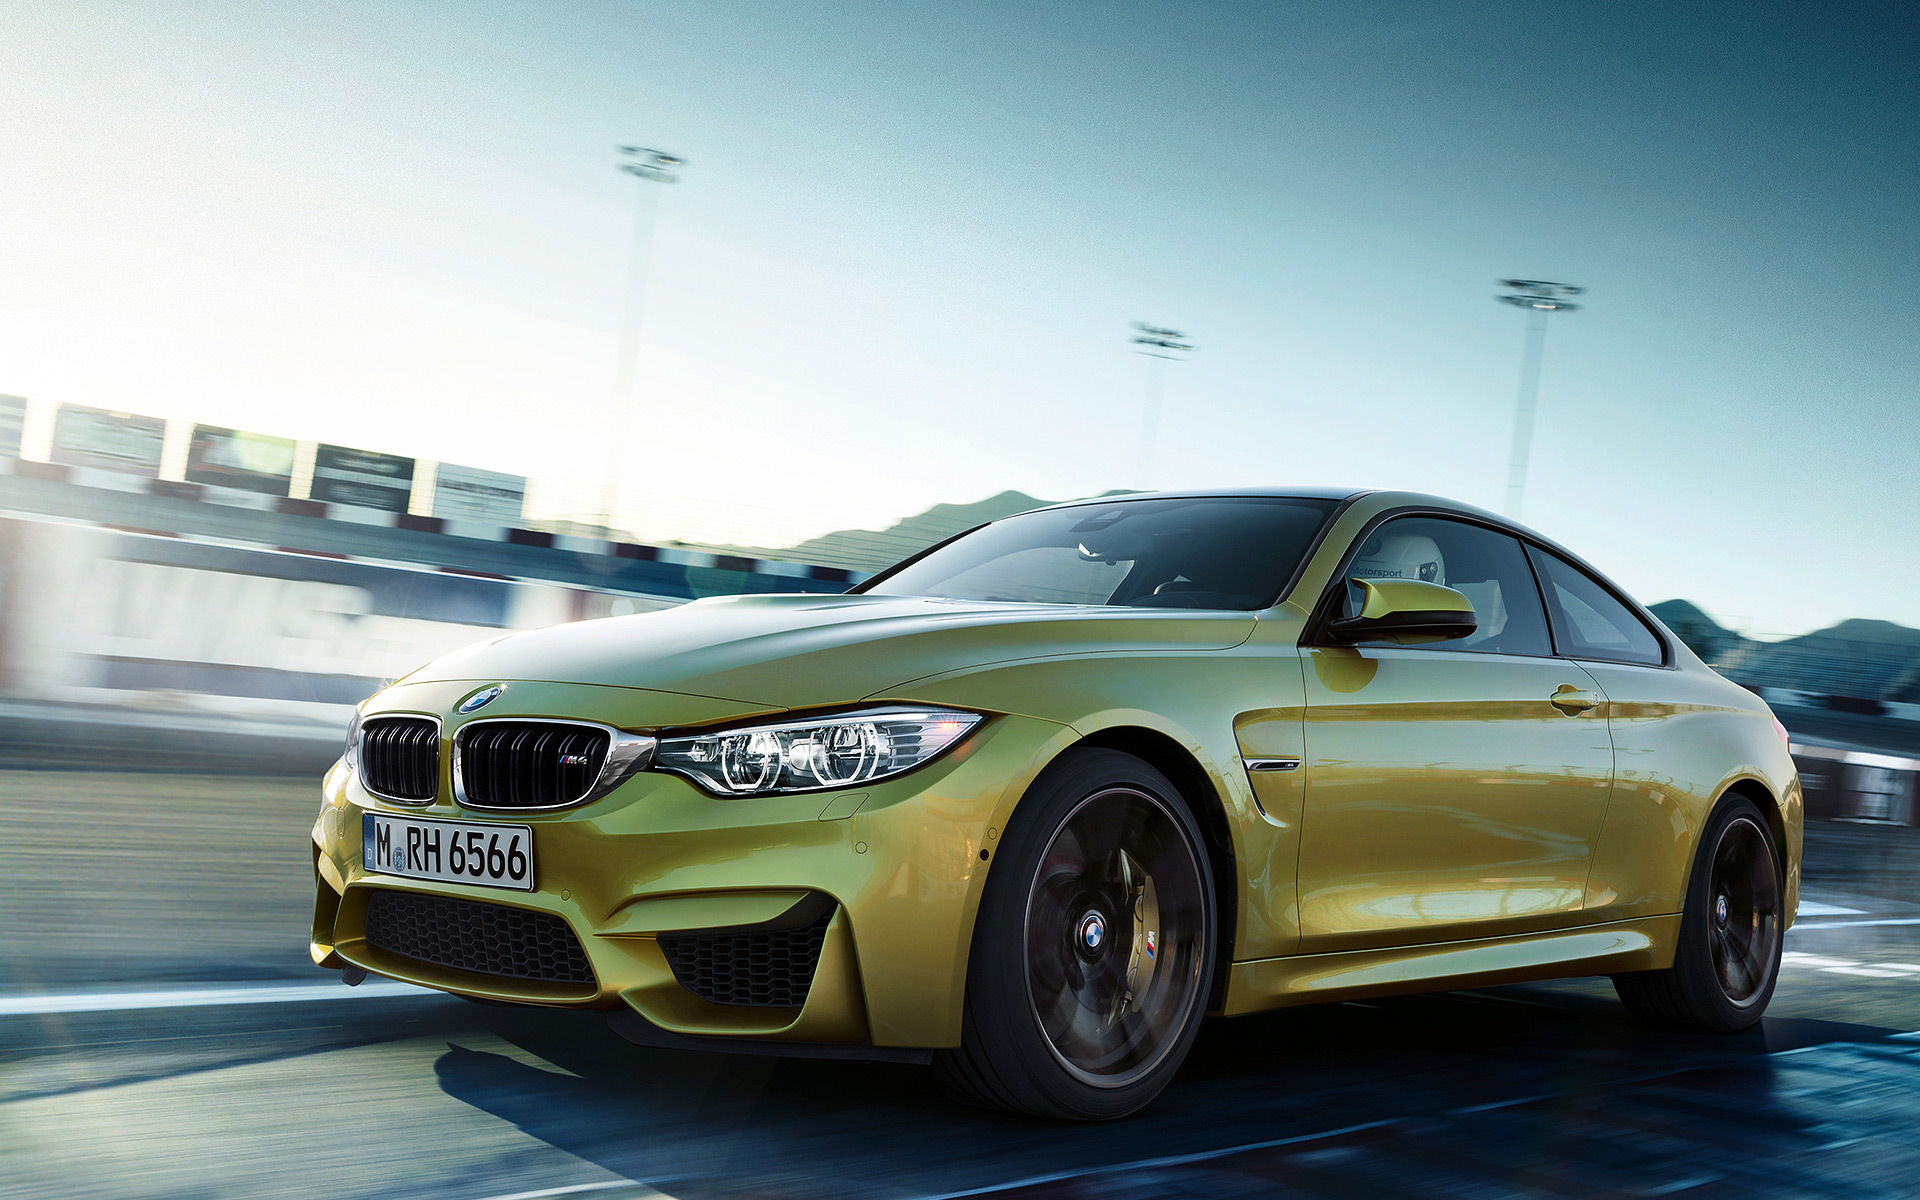 Cars Hd Wallpapers 1080p For Pc Bmw Your Ridiculously Beautiful Bmw M4 Coupe Wallpapers Are